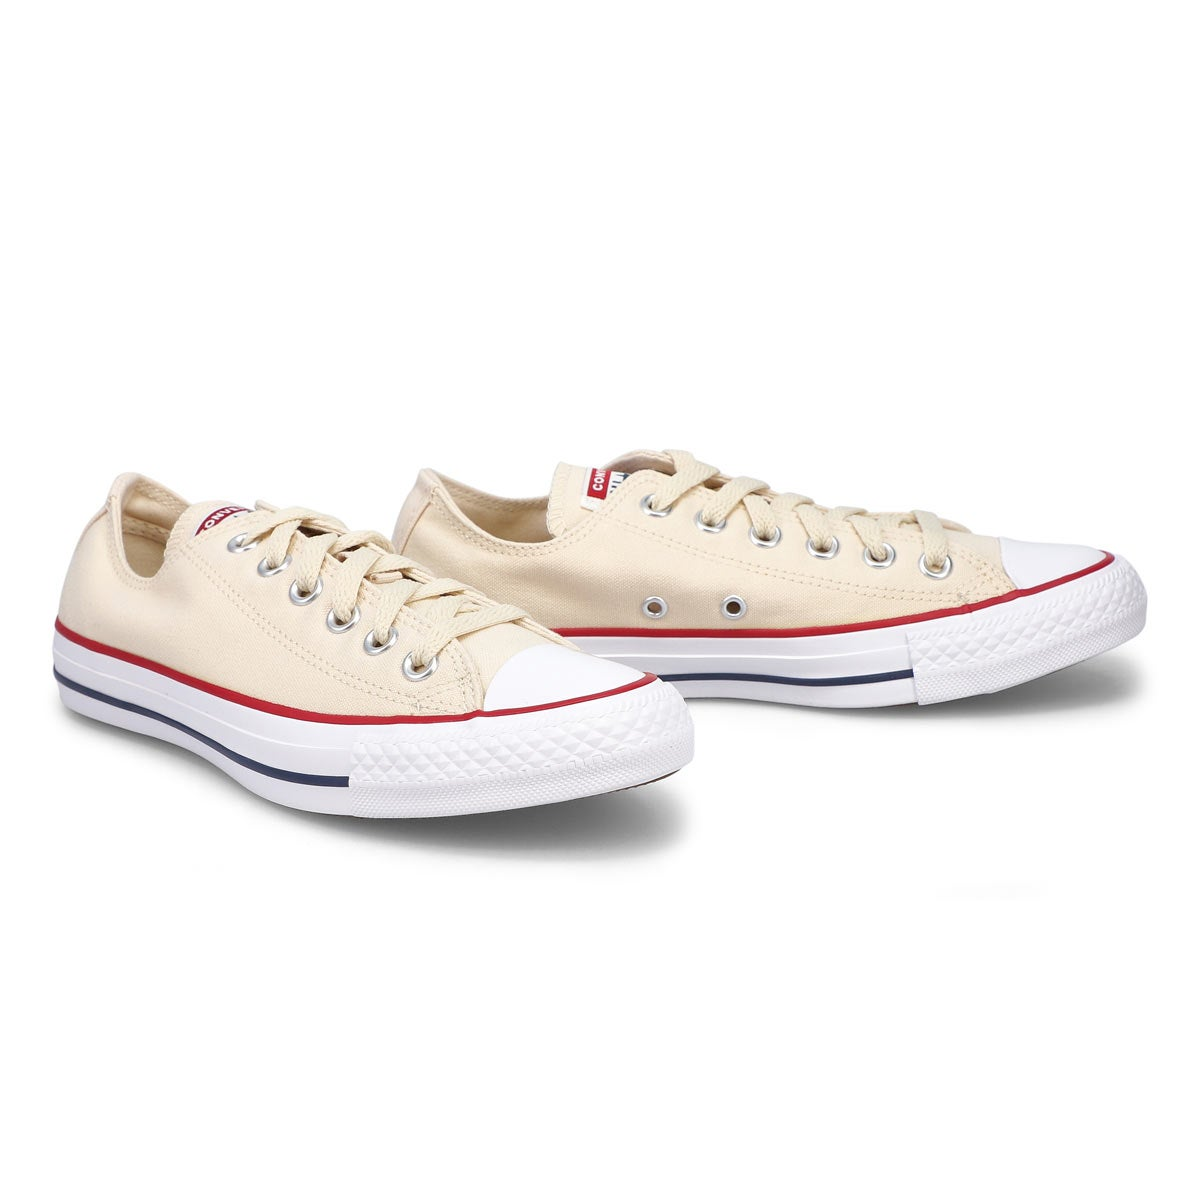 Lds CT All Star Core Ox ivory sneaker